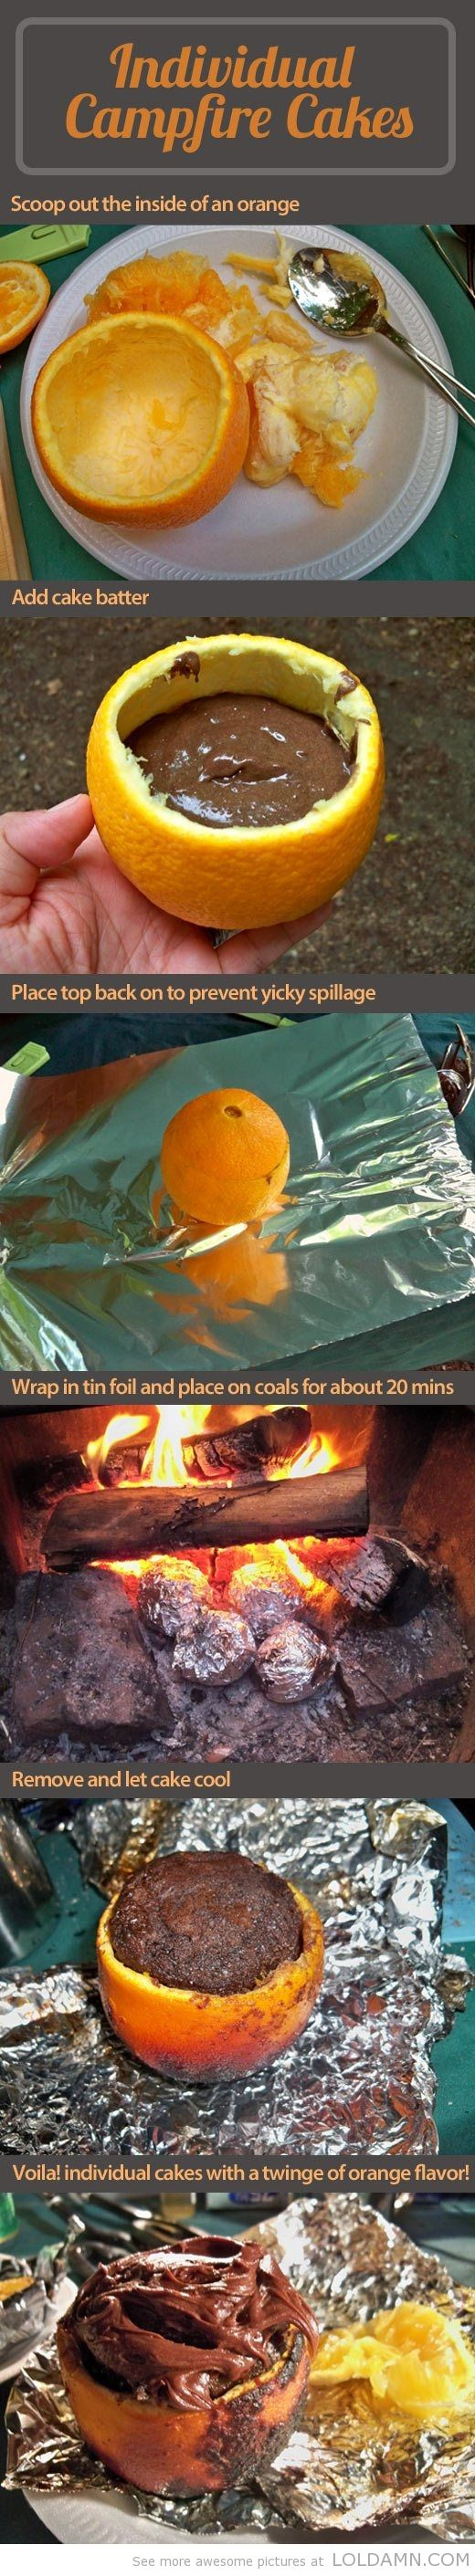 Awesome recipes: Campfire Cake in Oranges